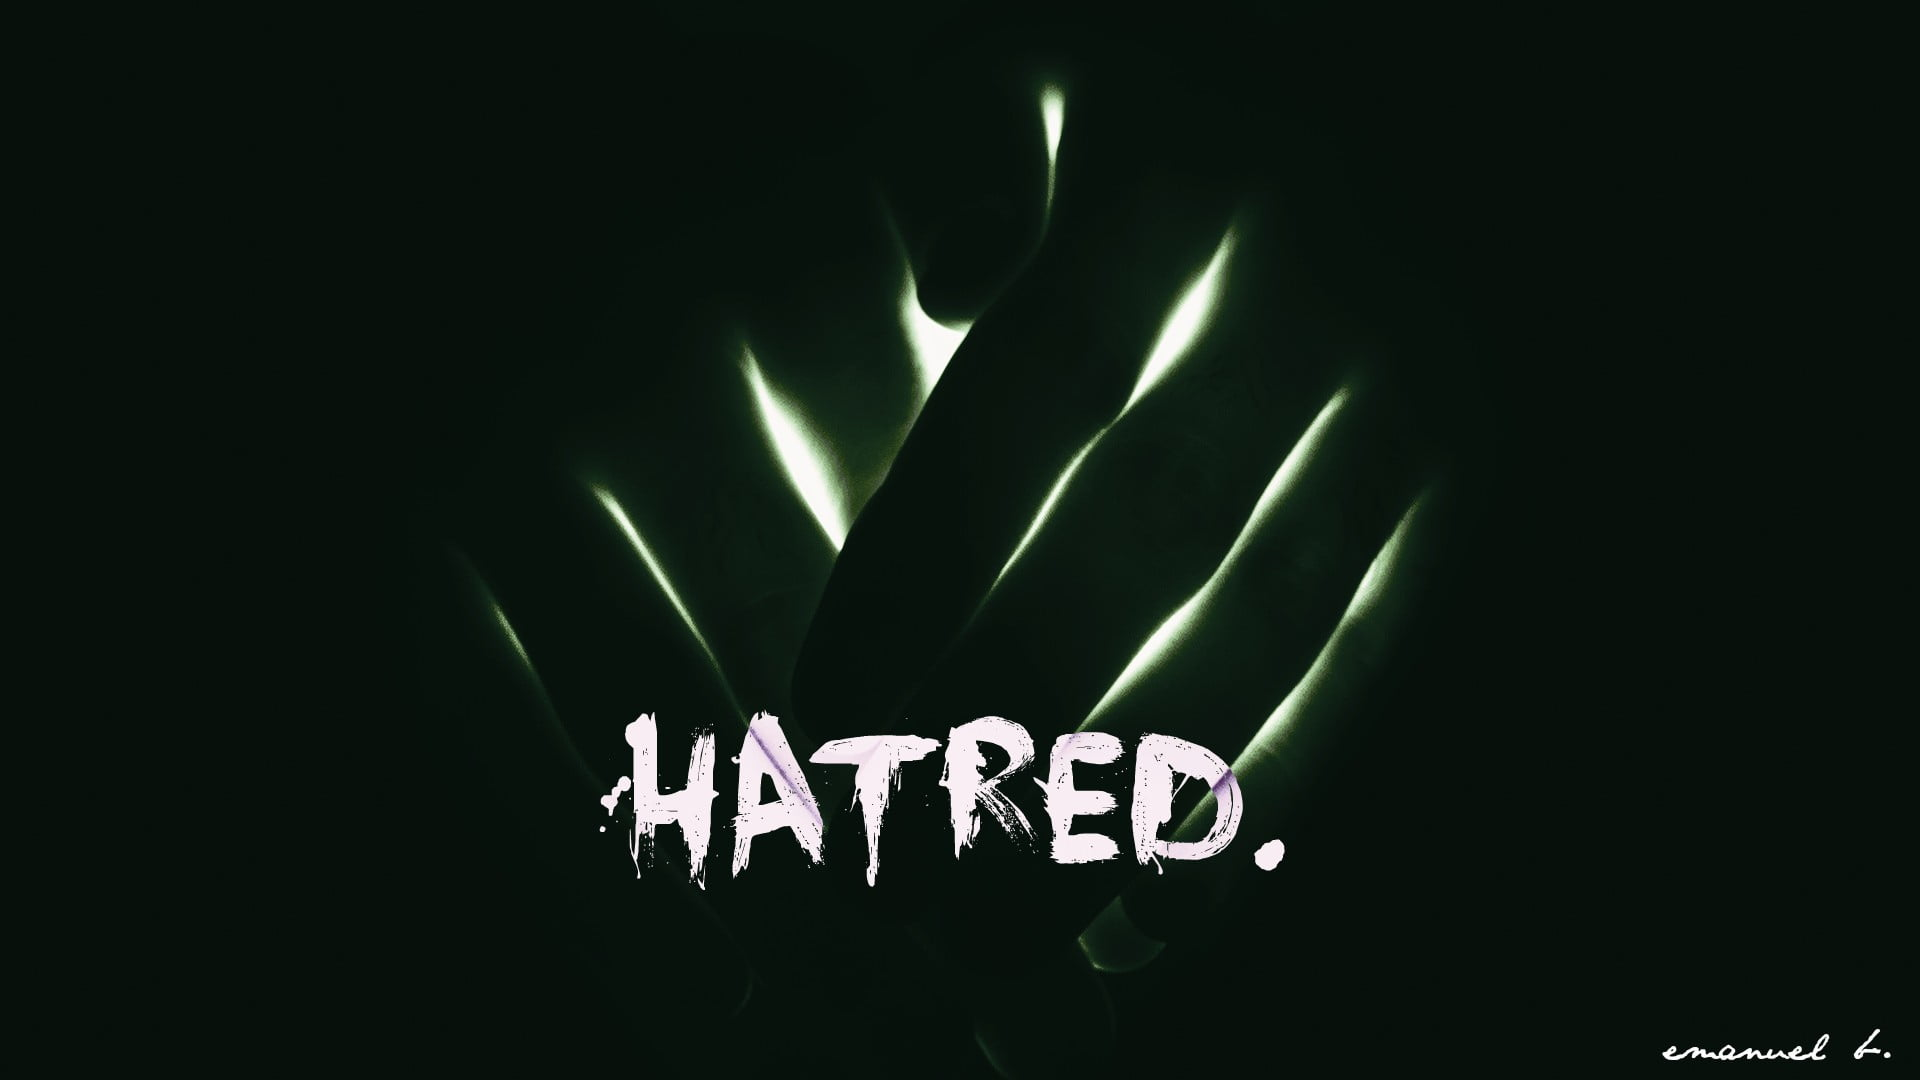 White and black Hatred logo HD wallpaper Wallpaper Flare 1920x1080